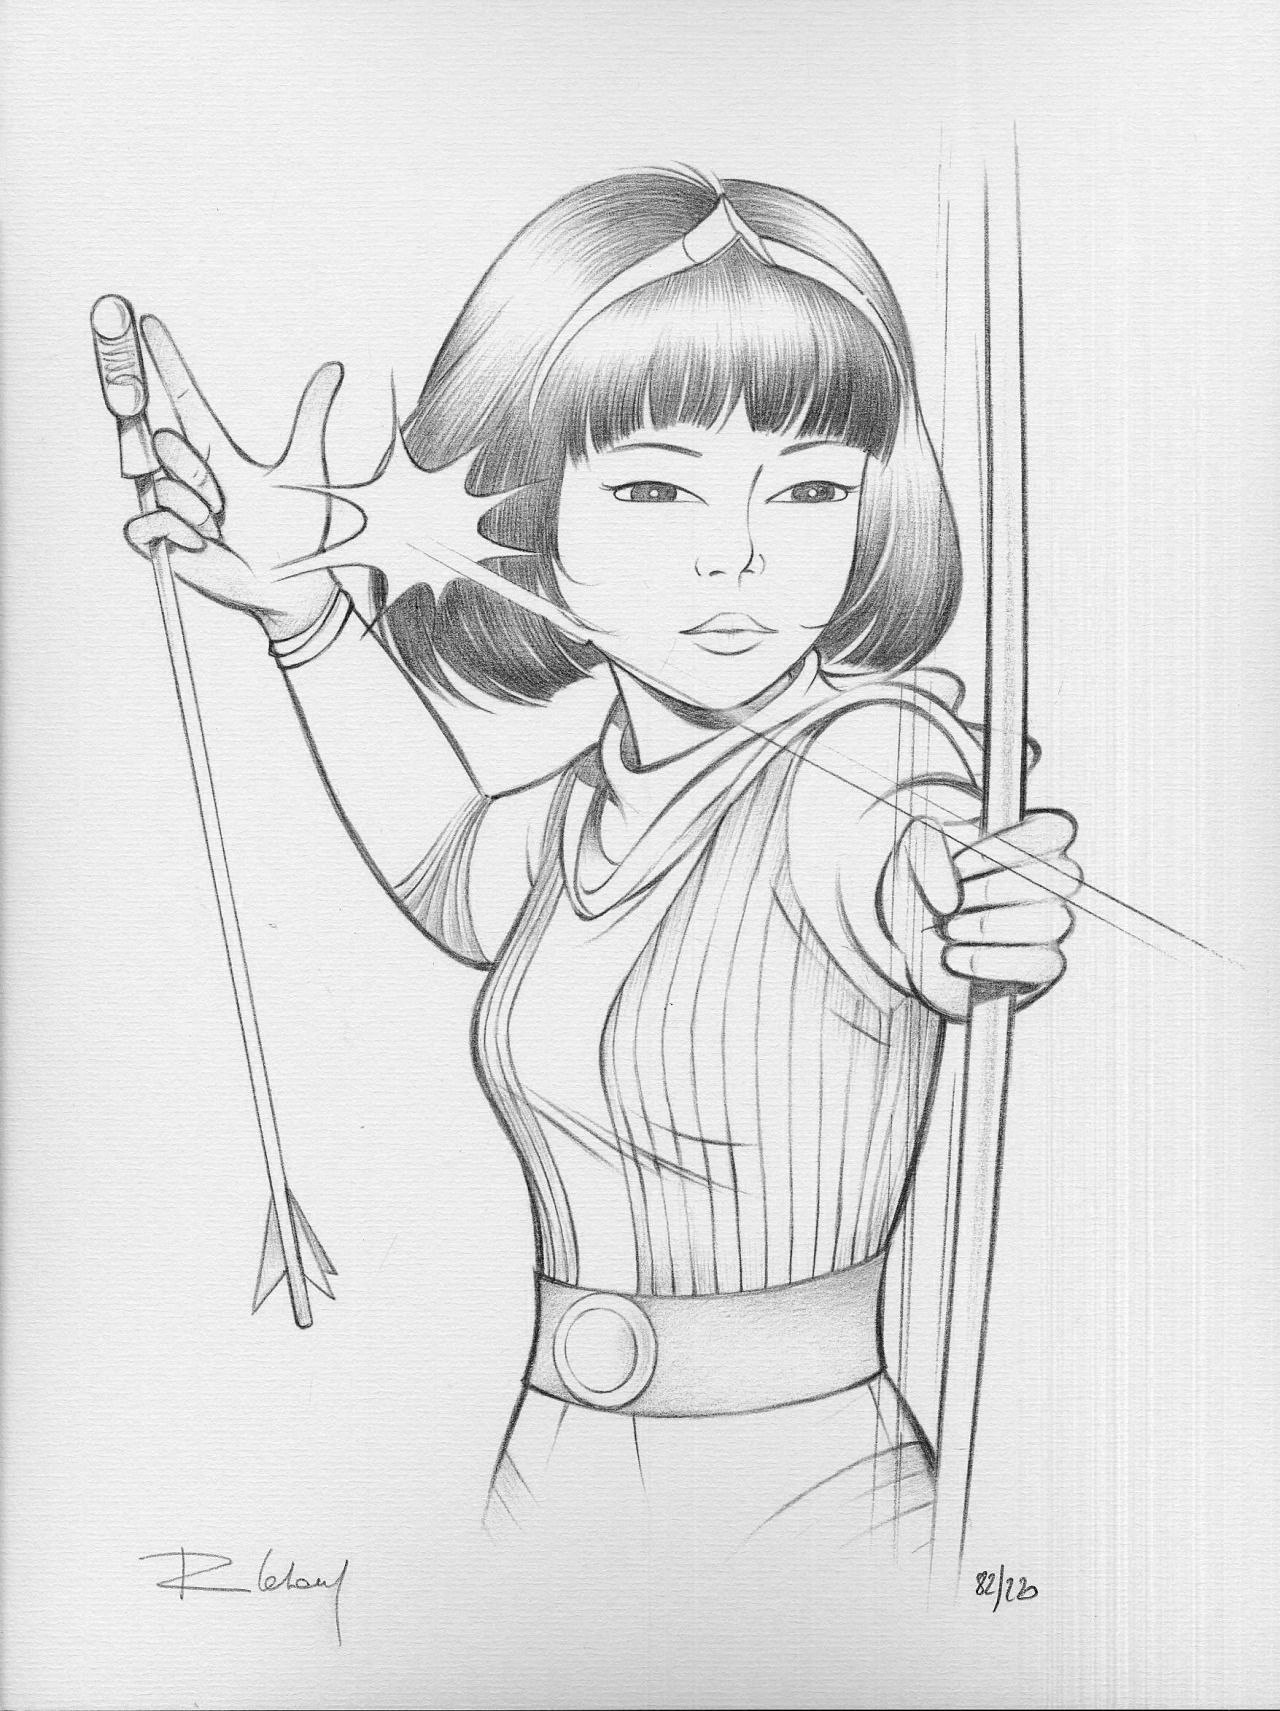 Yoko tsuno by roger leloup croquis dessins in 2018 pinterest bande dessin e dessin and - Coloriage bande dessinee ...